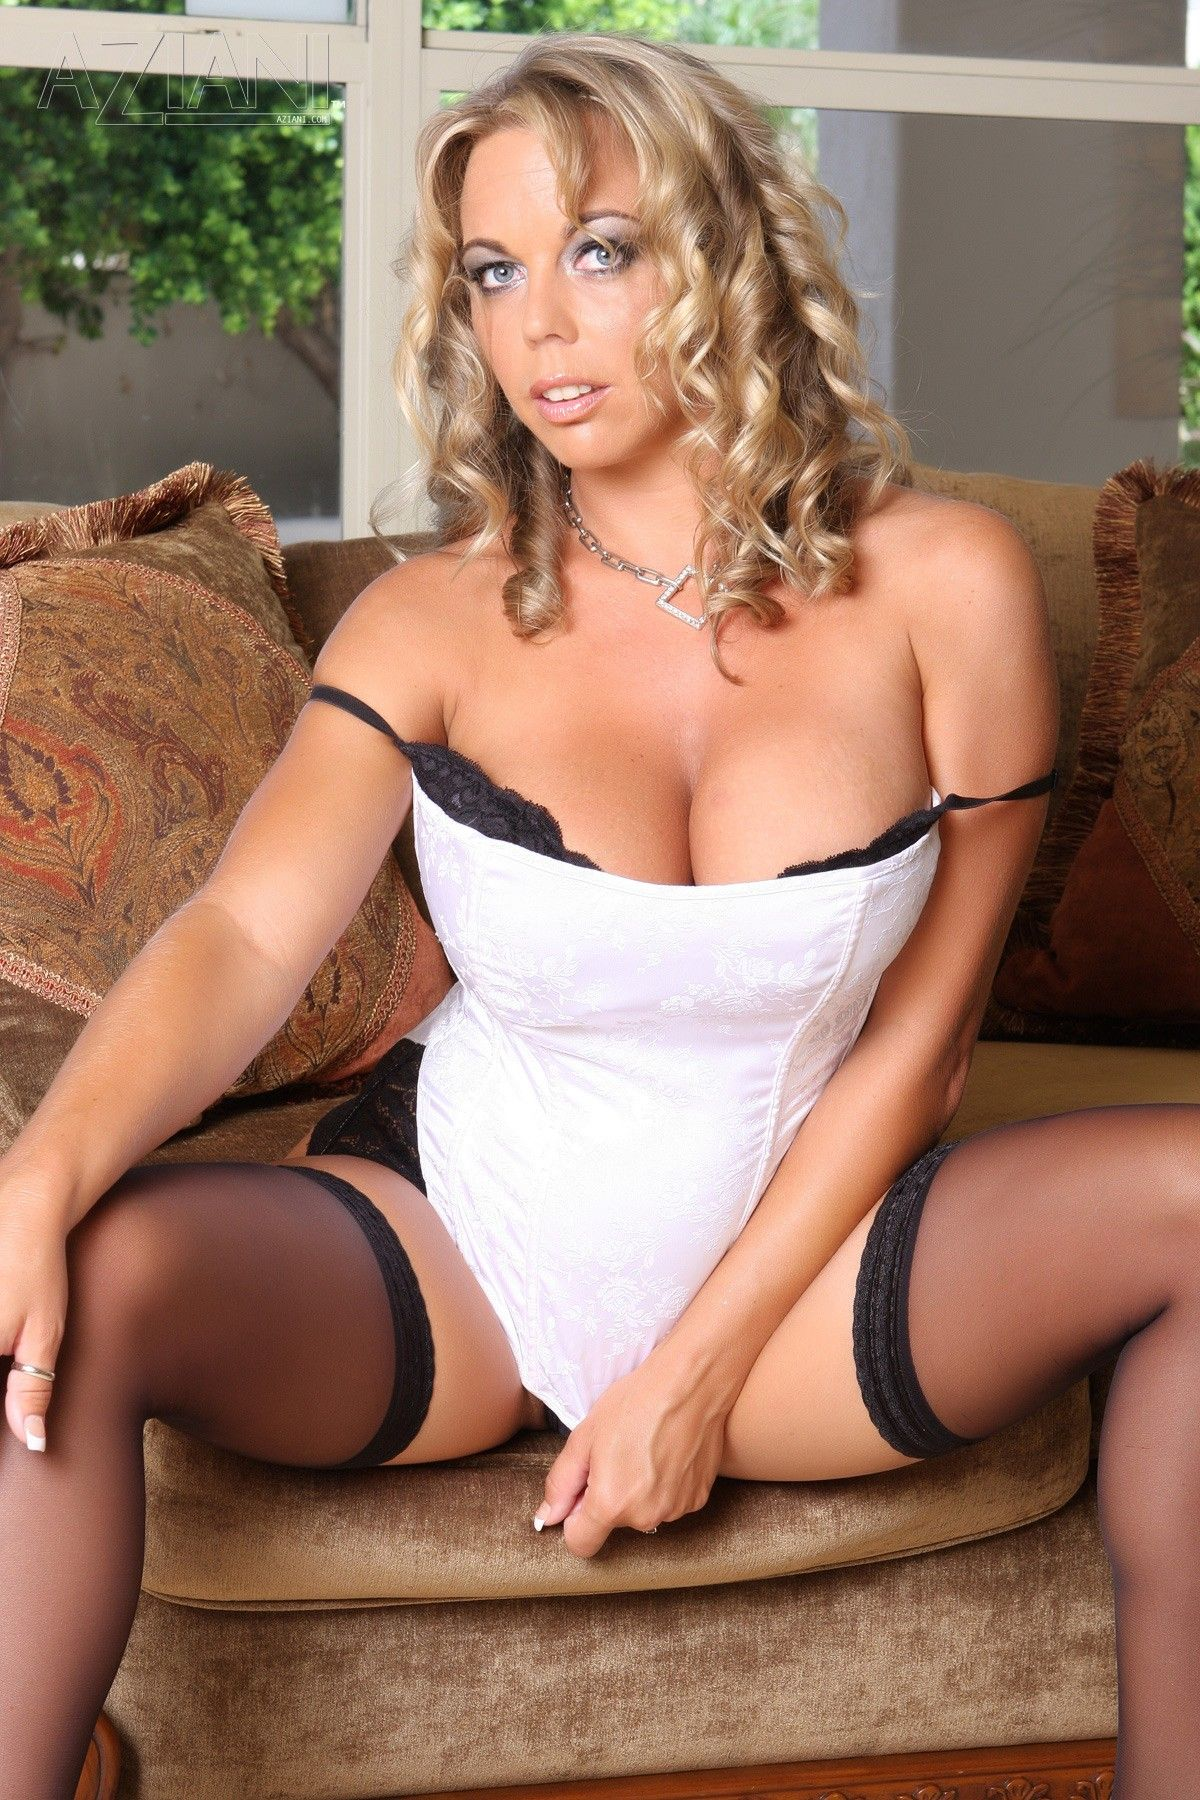 amber lynn bach | mature babes | pinterest | amber lynn, amber and boobs